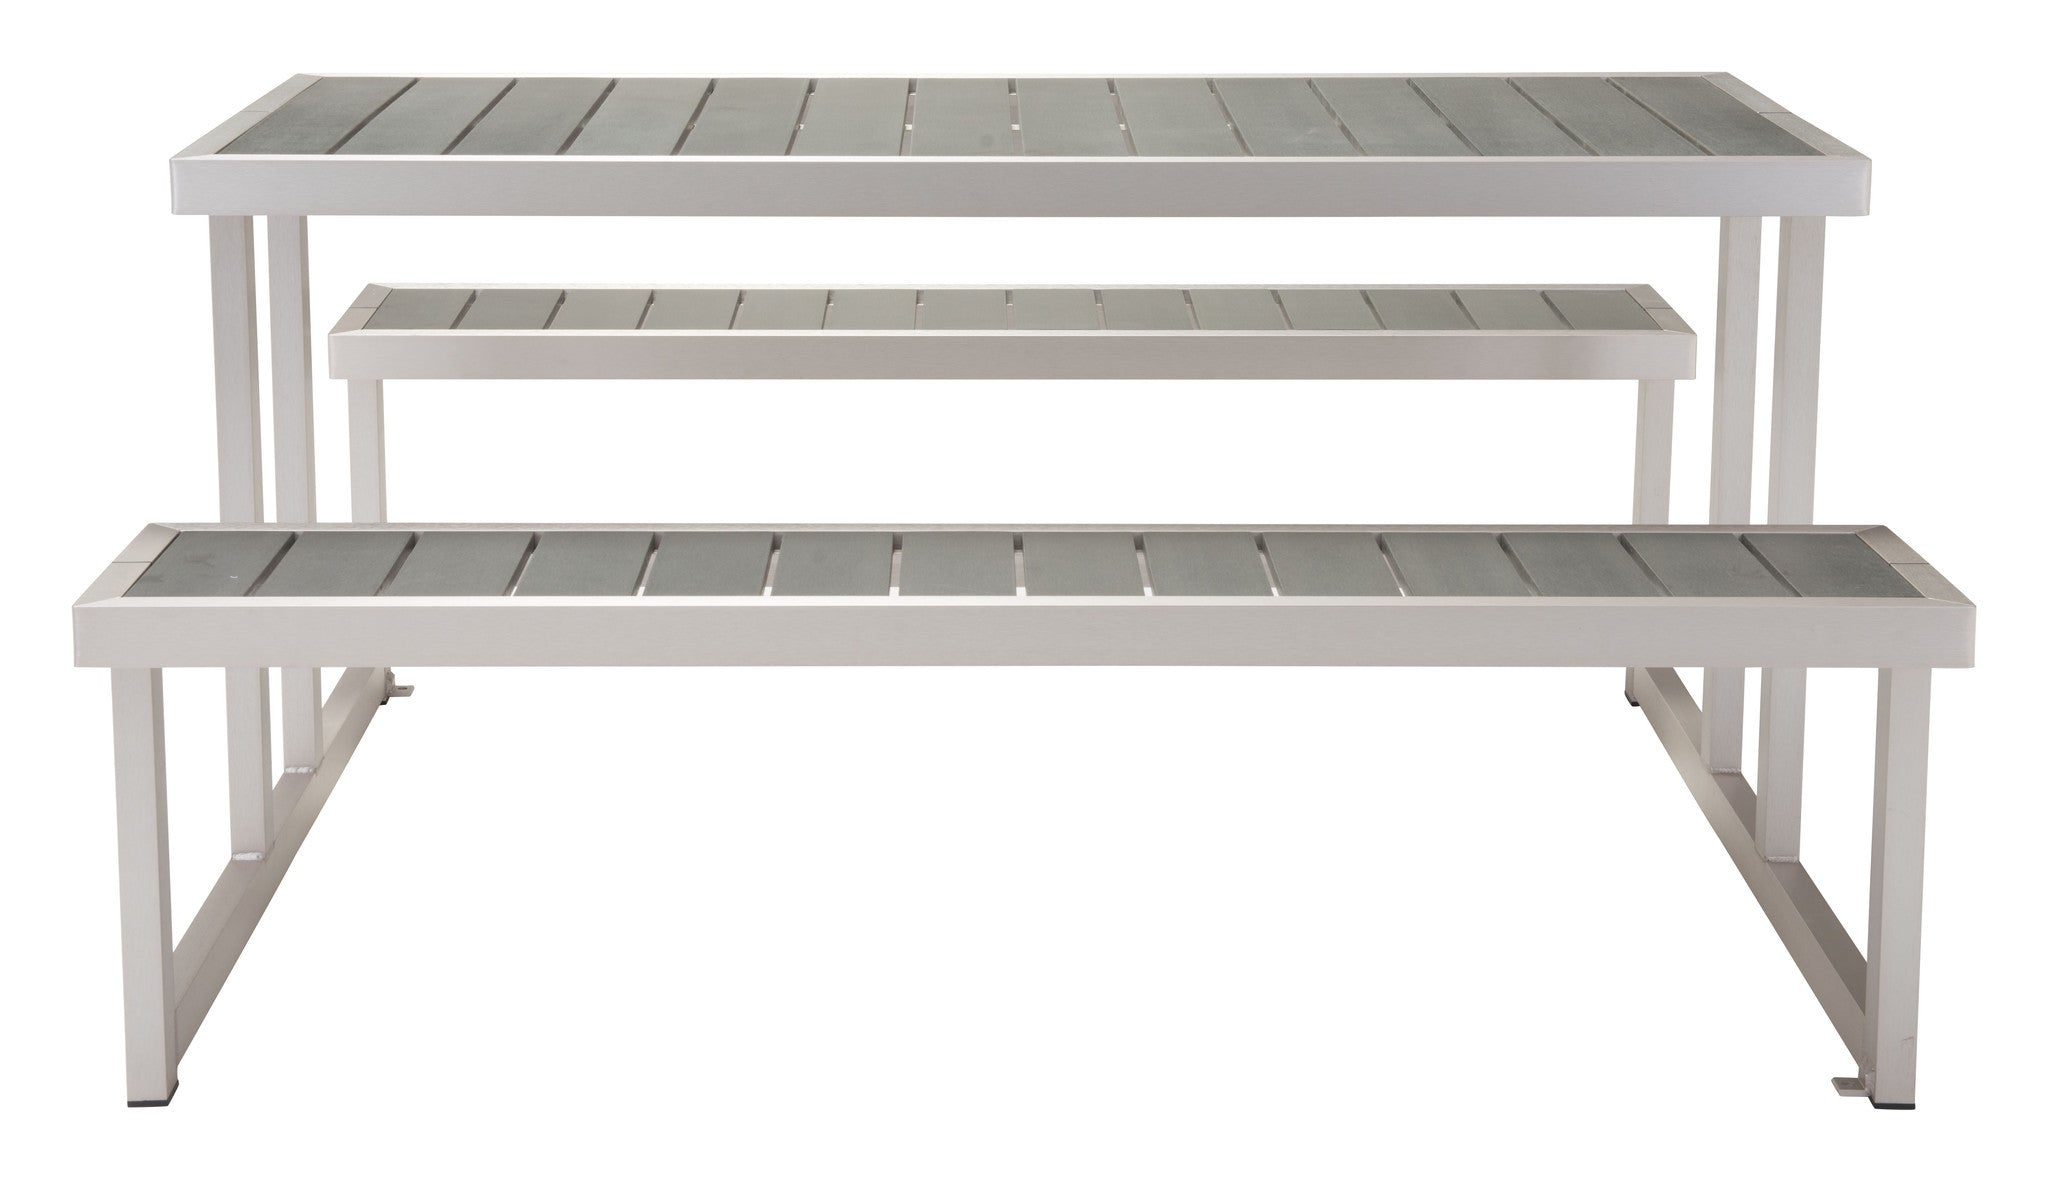 ... Cuomo Picnic Table U0026 Benches With Poly Wood Tops On Galvanized Aluminum  Frame Outdoor Tables ...